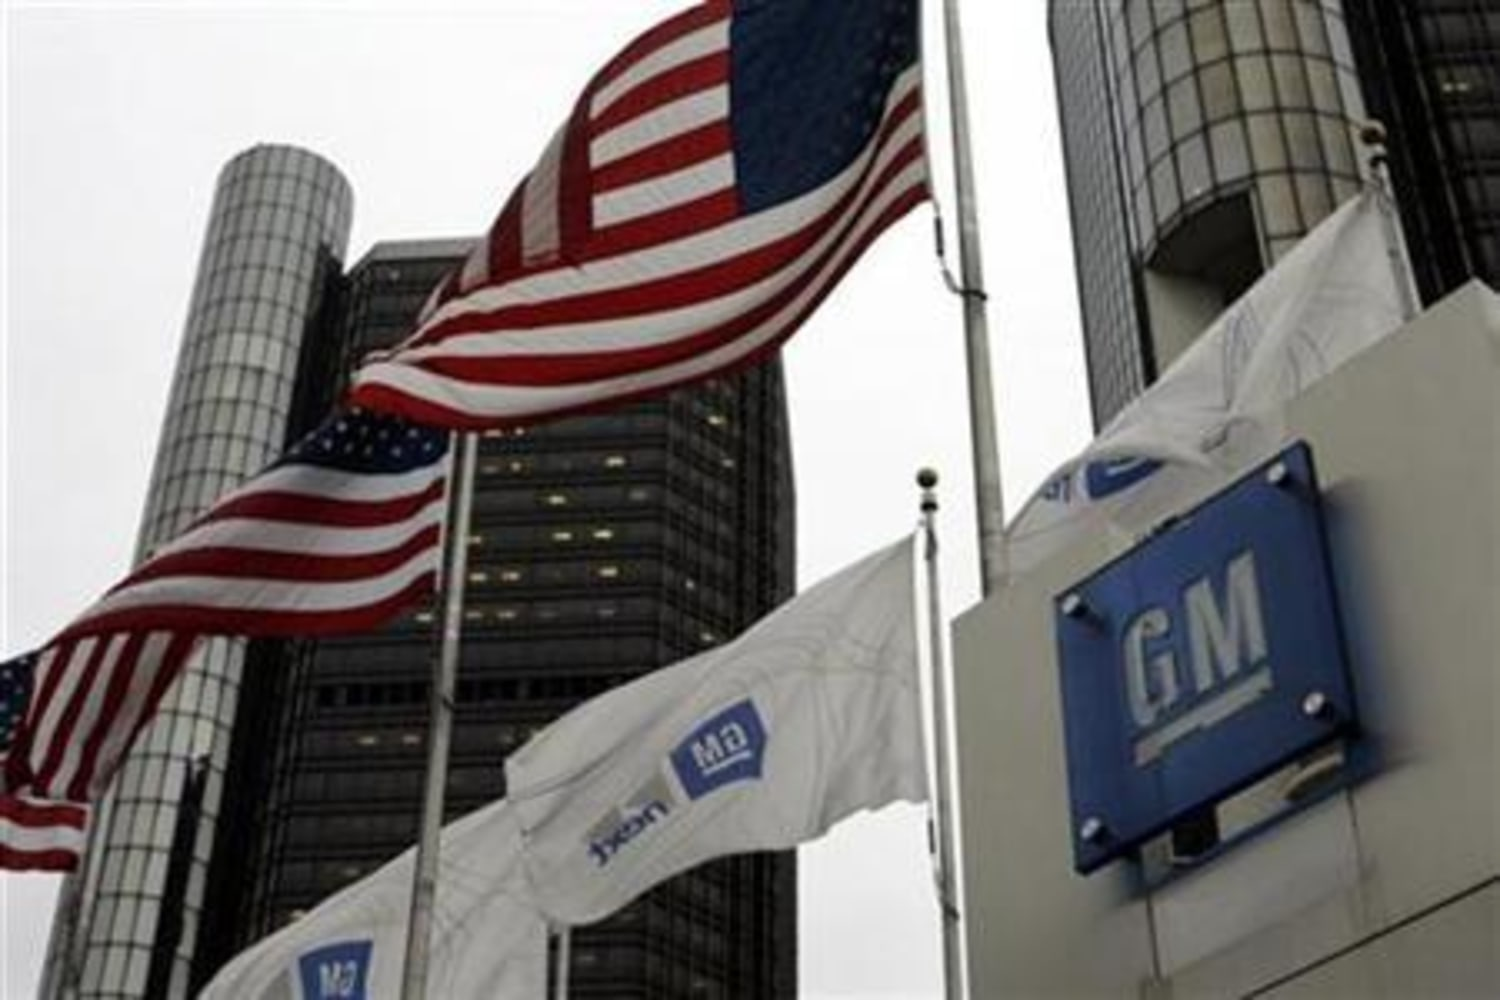 GM to temporarily shut down 5 plants in the US